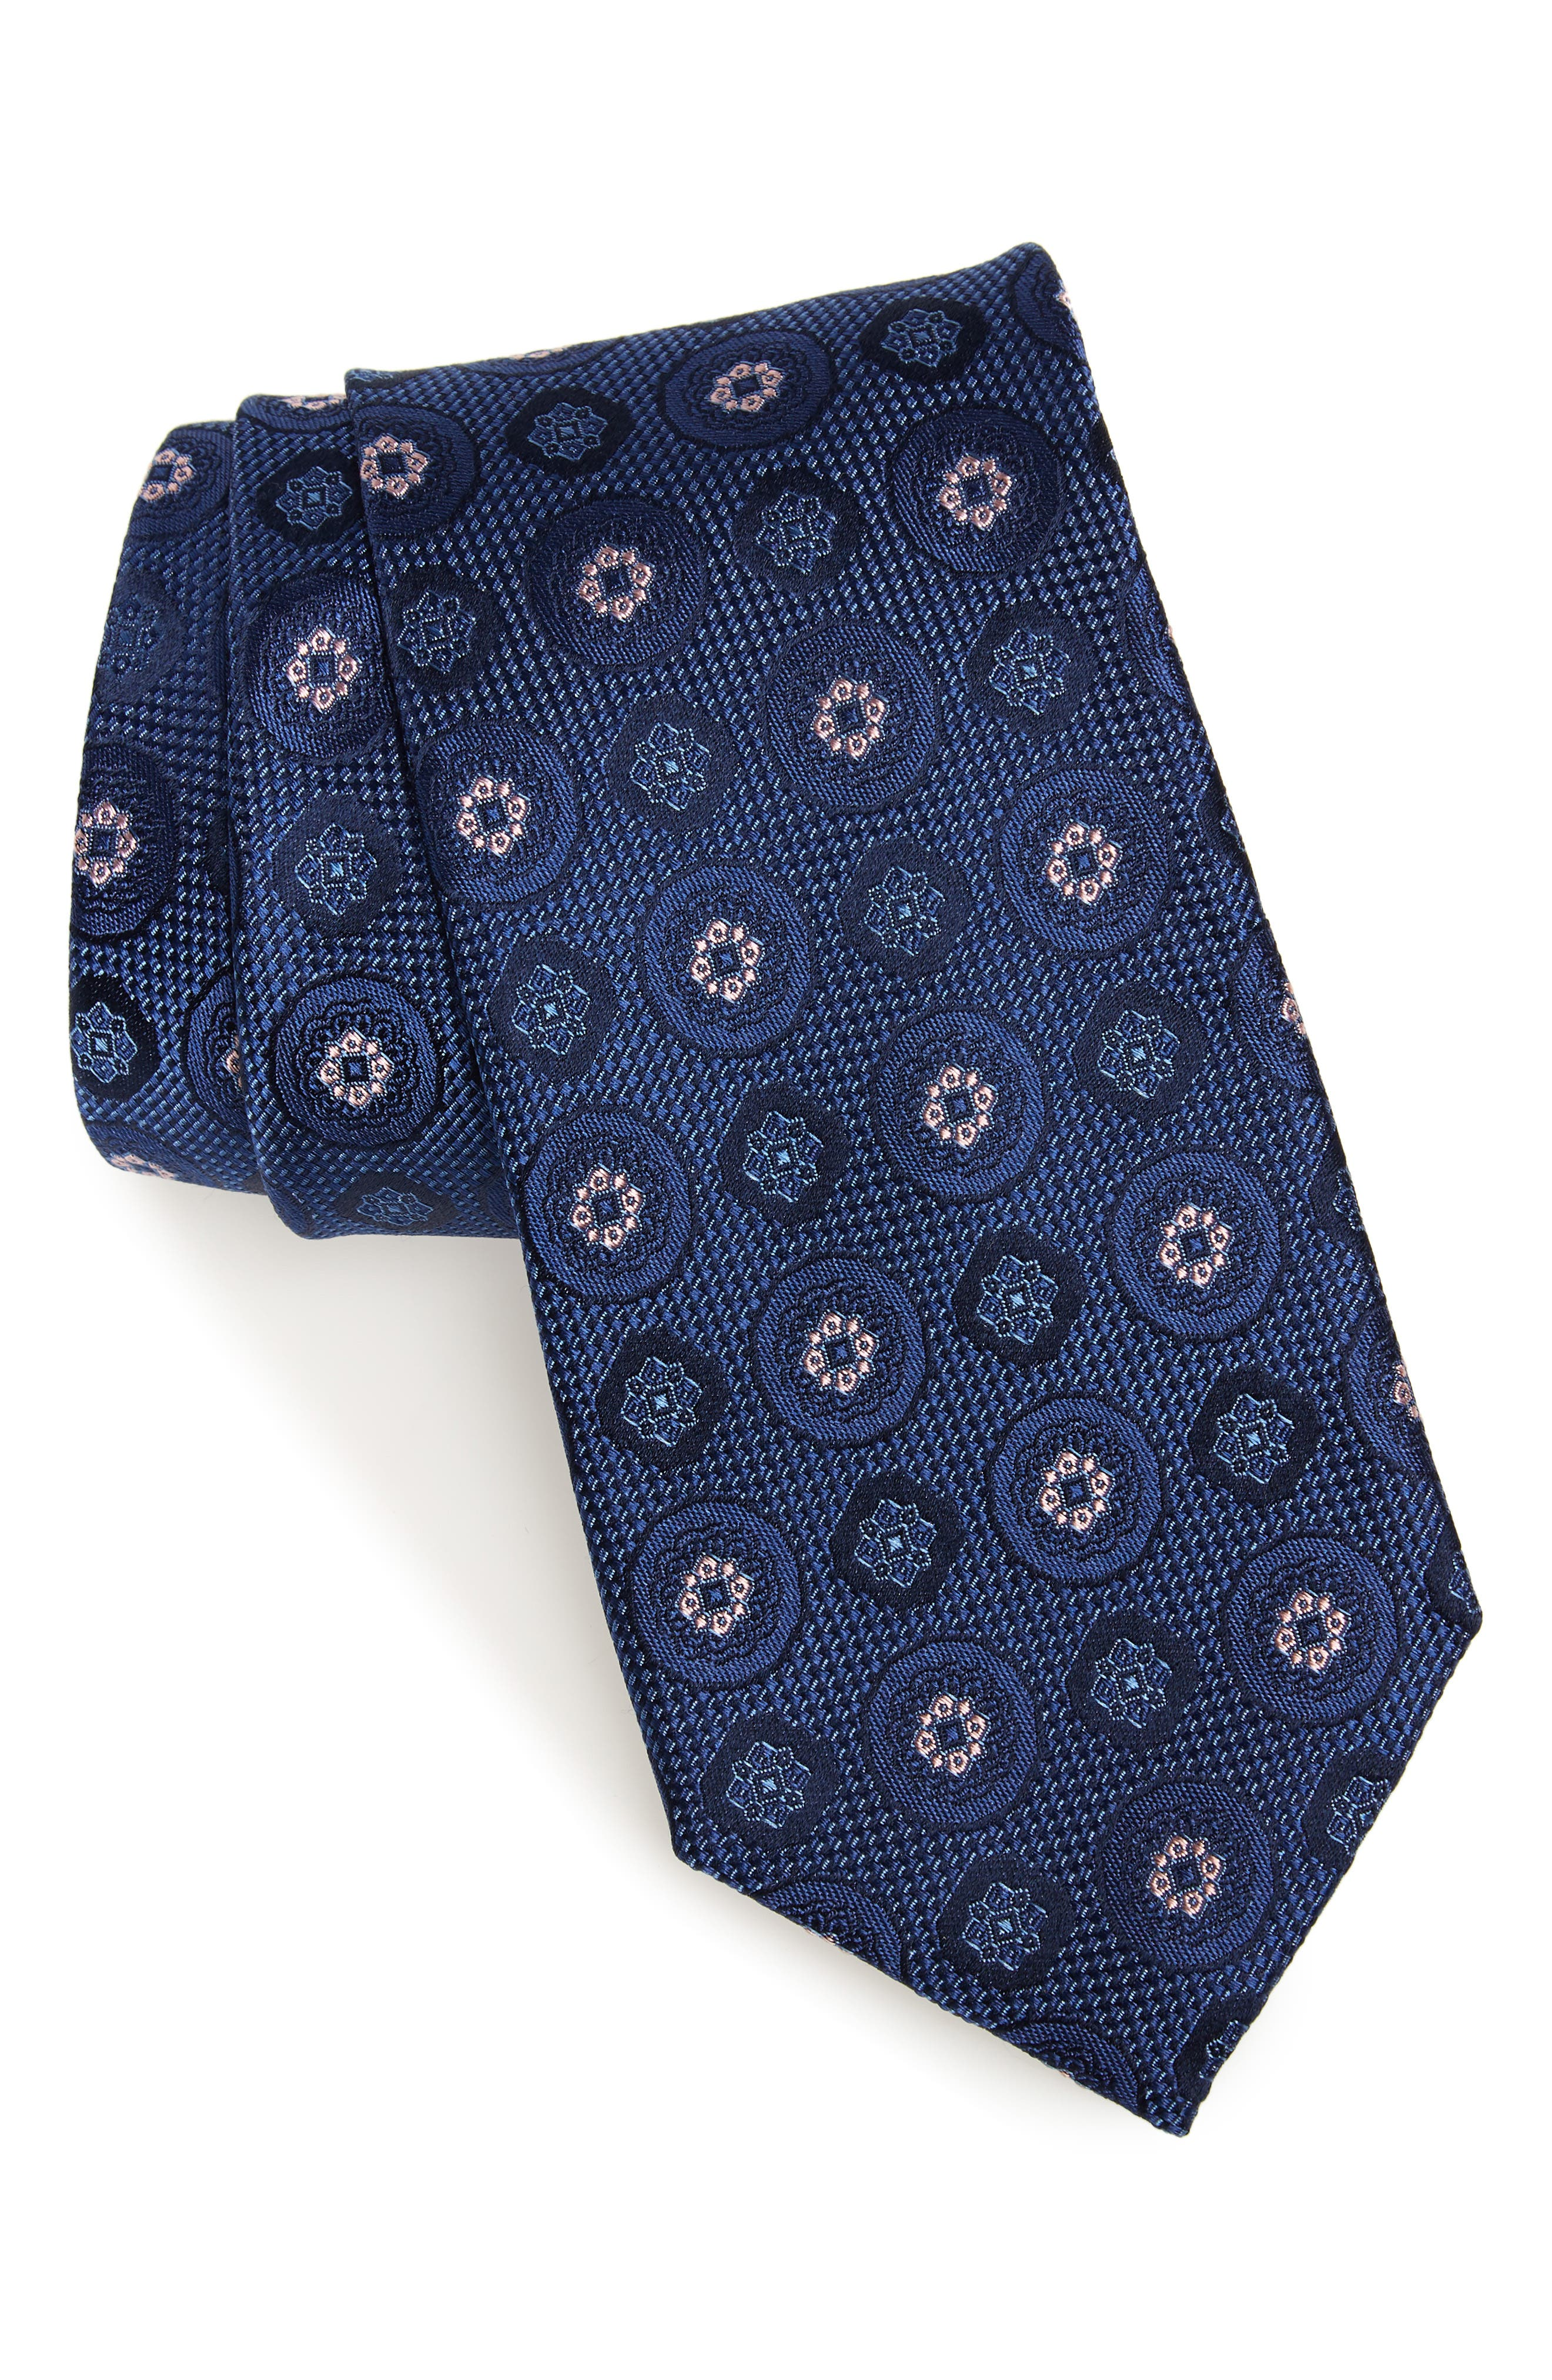 Edlin Medallion Silk Tie,                             Main thumbnail 1, color,                             NAVY